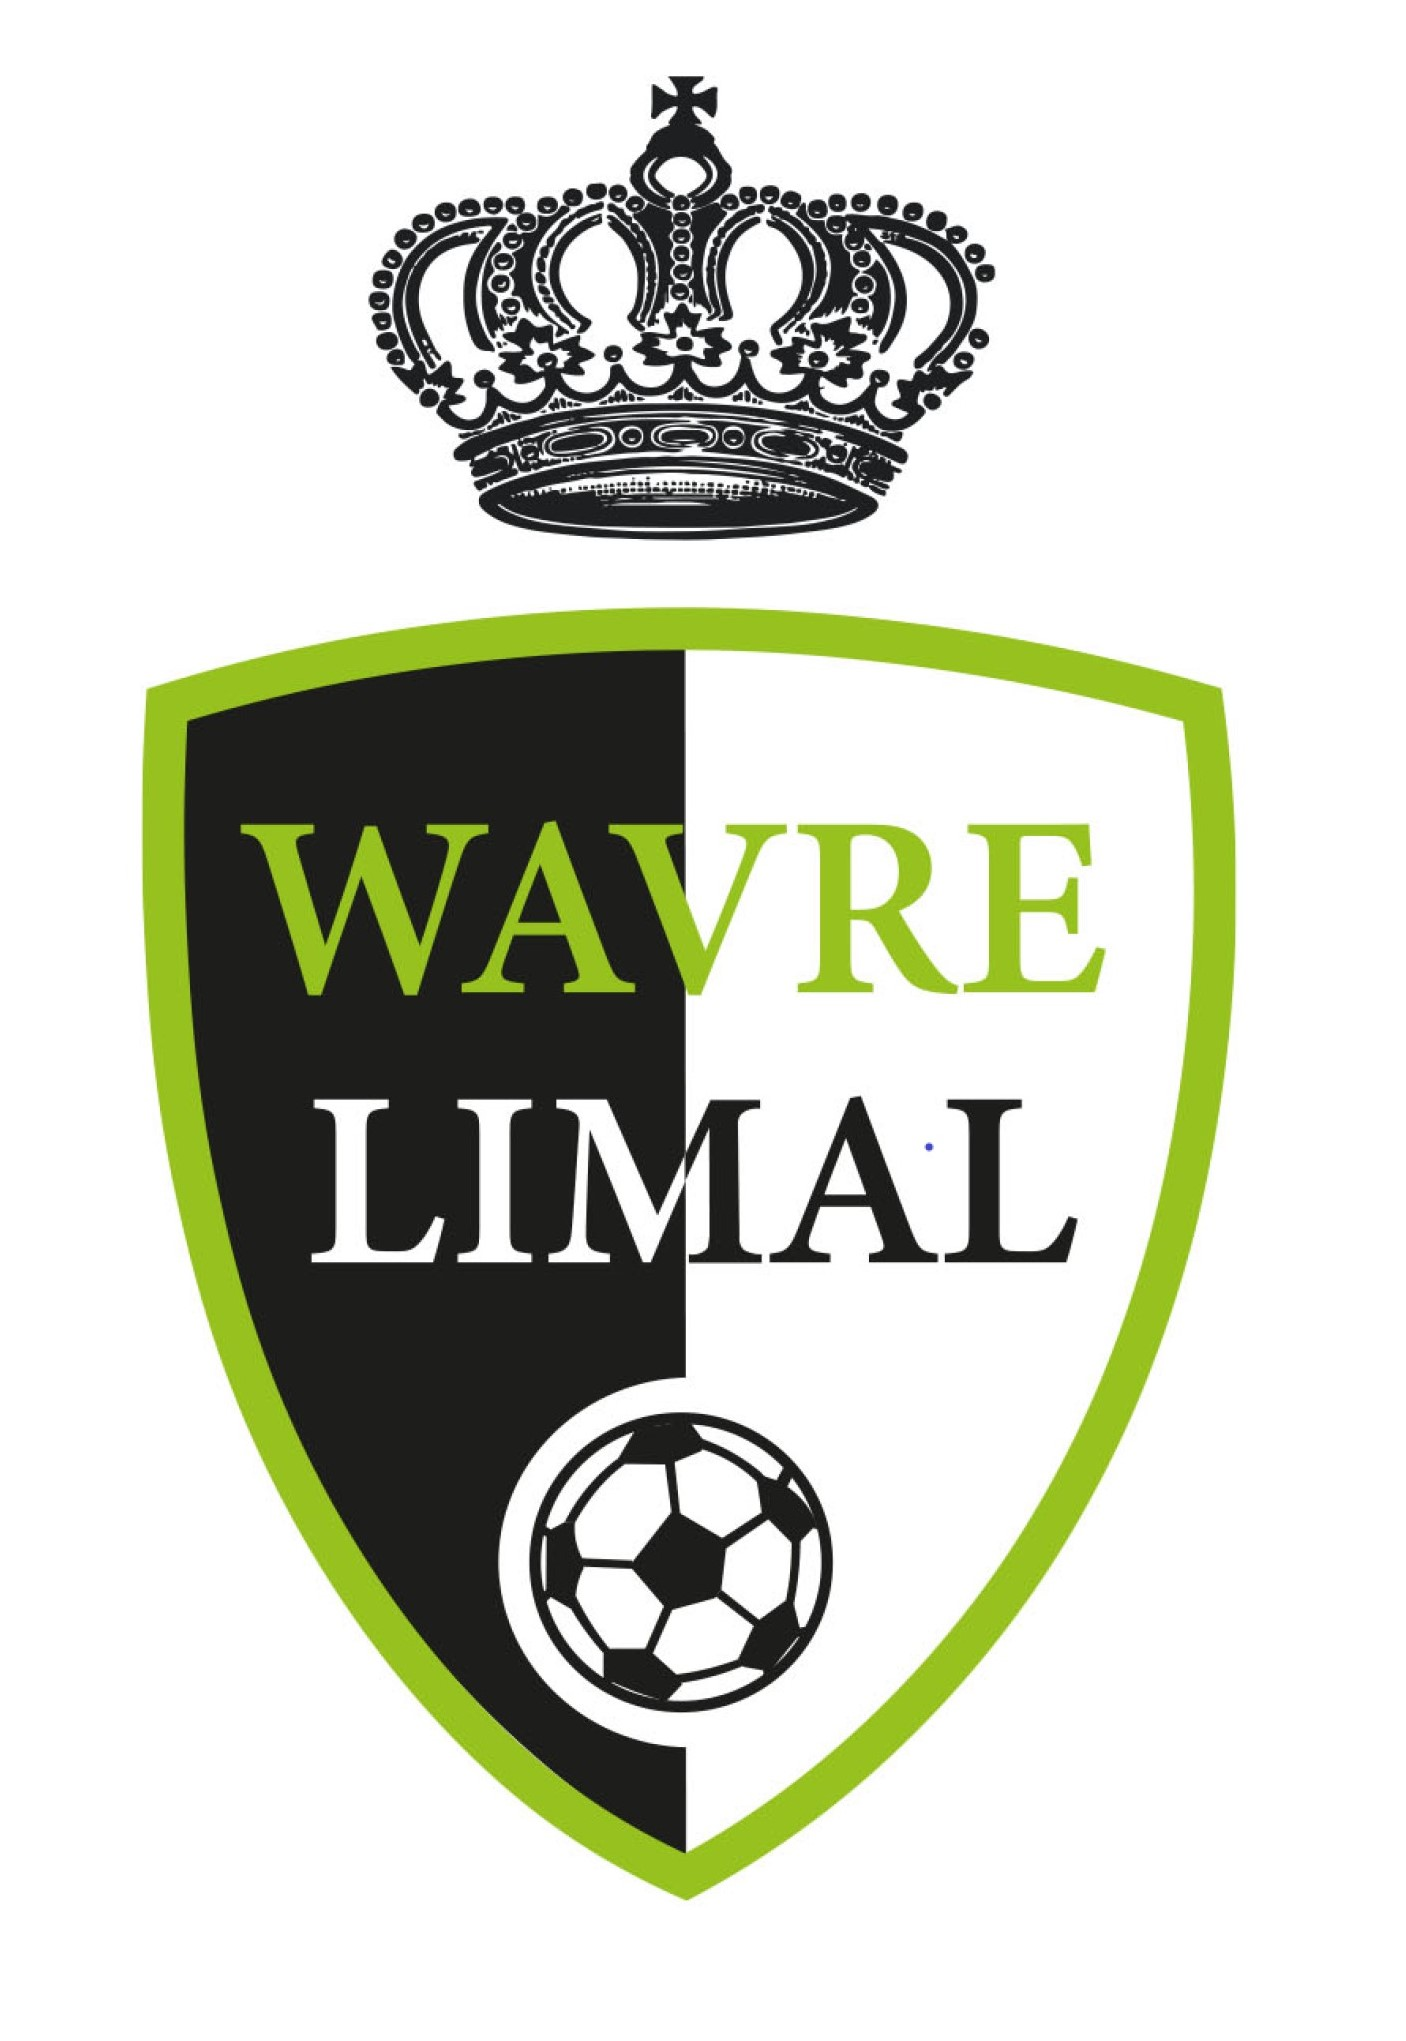 1 - R.Wavre Limal A